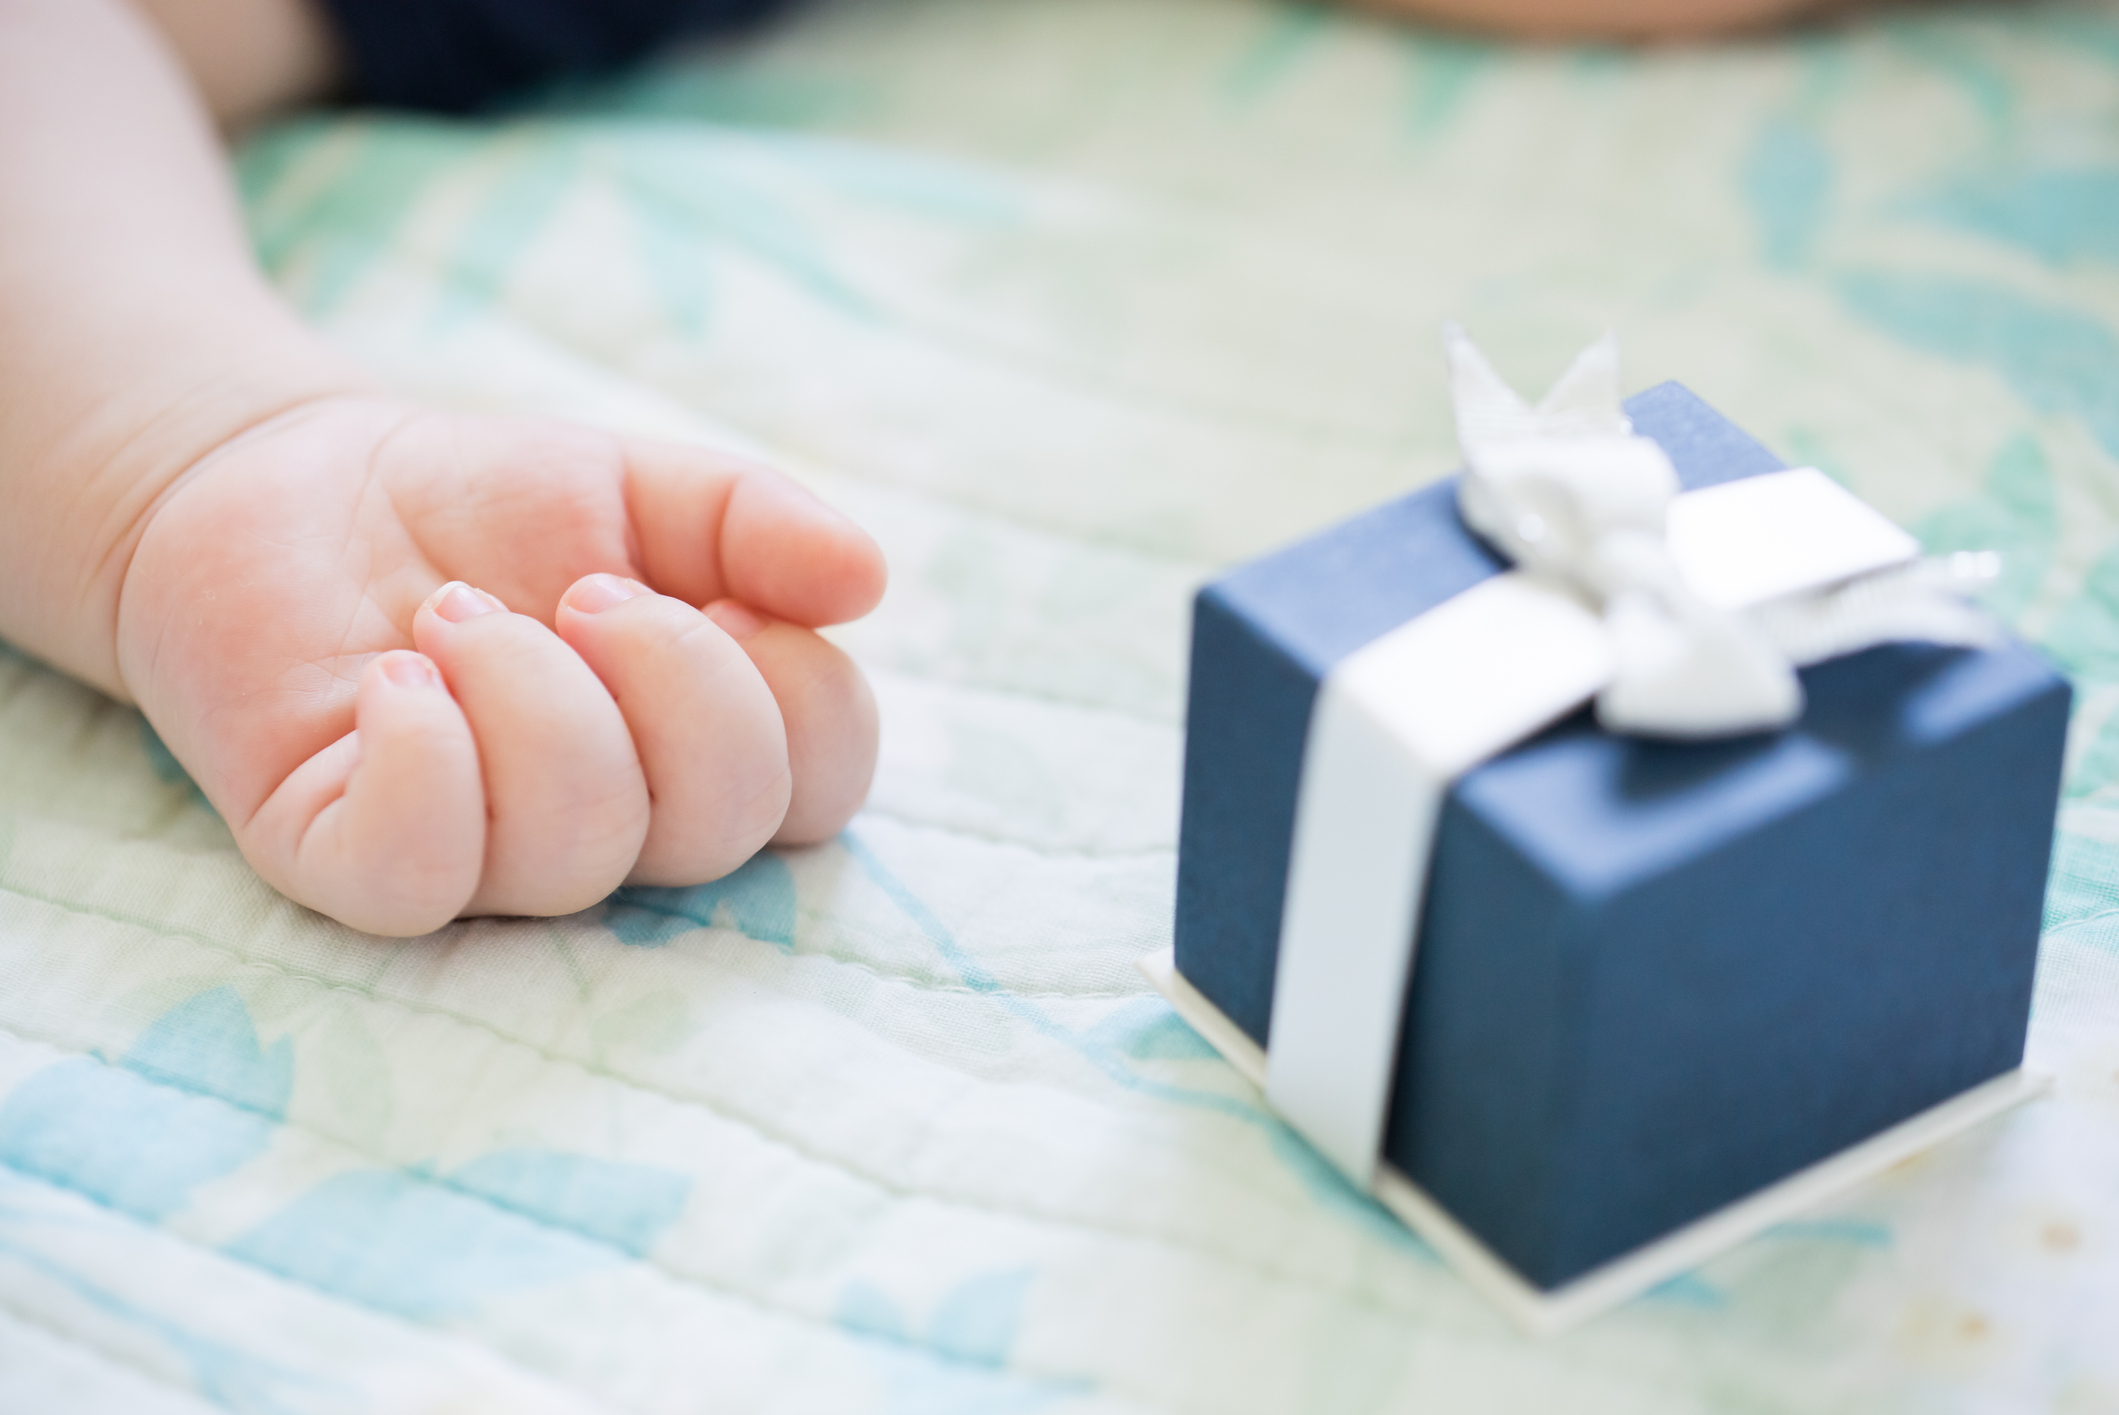 Customised baby gift list - The last thing you want when your baby arrives is to receive gifts that aren't quite what you were hoping for. We will help you put together a beautifully customised gift list that you can share with friends and family…making sure your baby has the best (and most stylish!) entrance into the world as possible!Get started now…